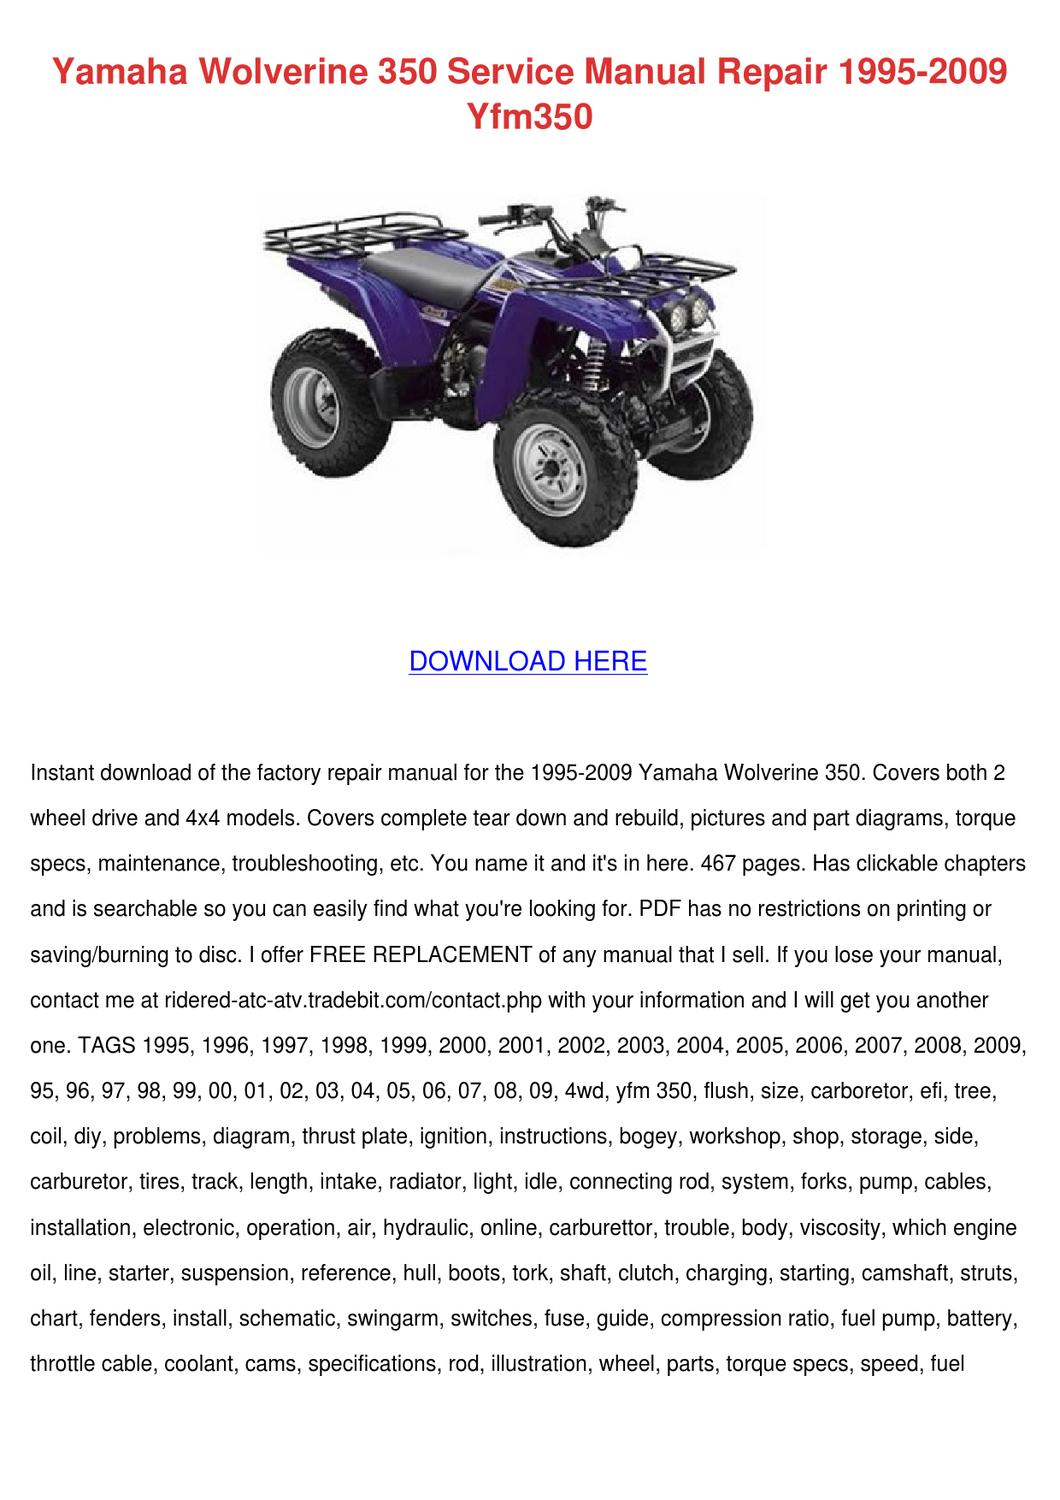 Yamaha Wolverine 350 Service Manual Repair 19 By Sharee